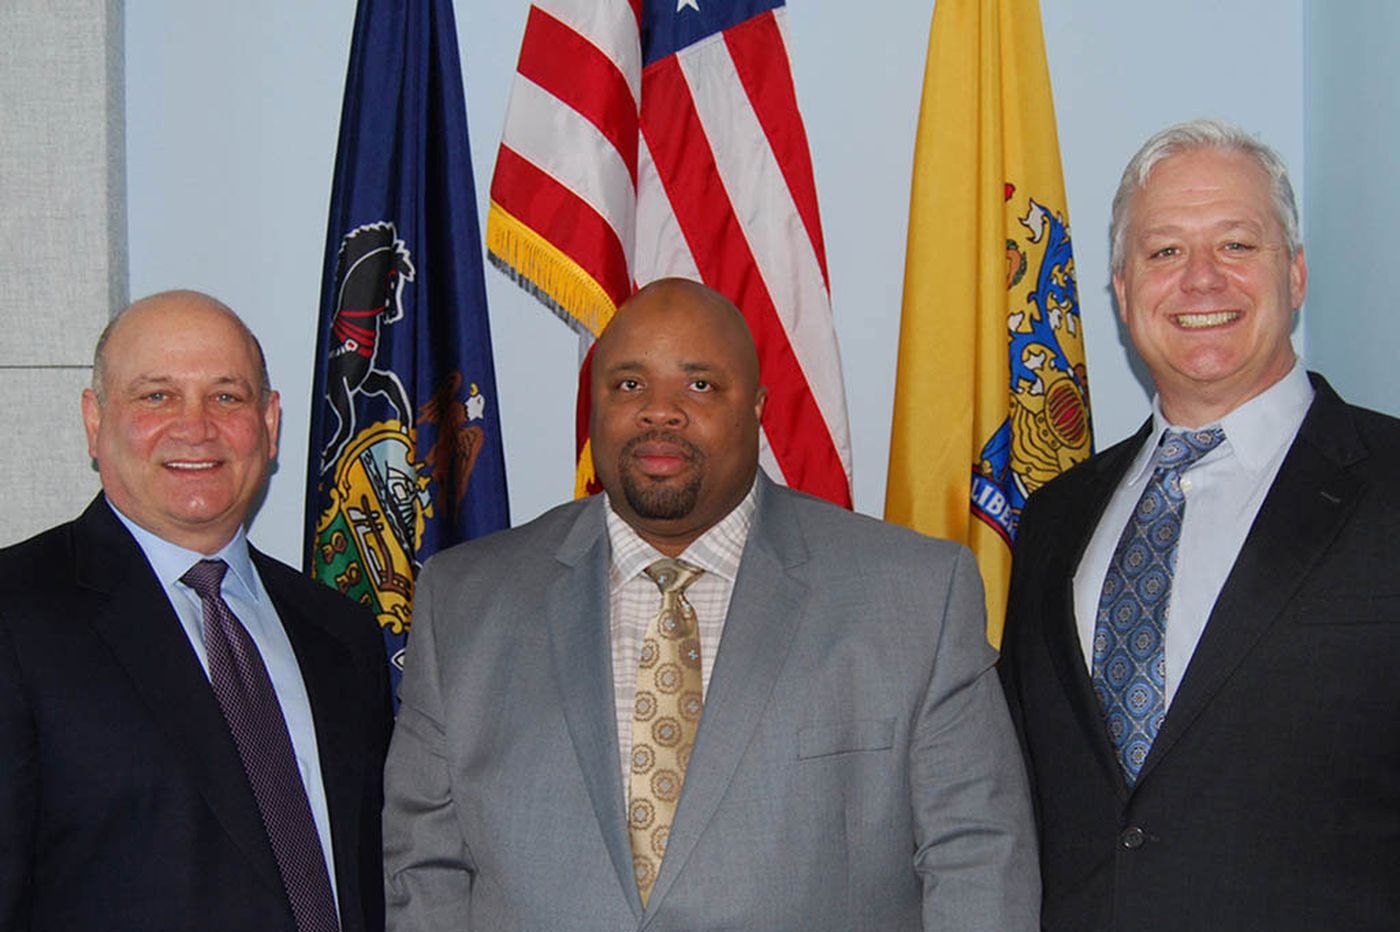 New DRPA chairman to push for pay hikes for workers